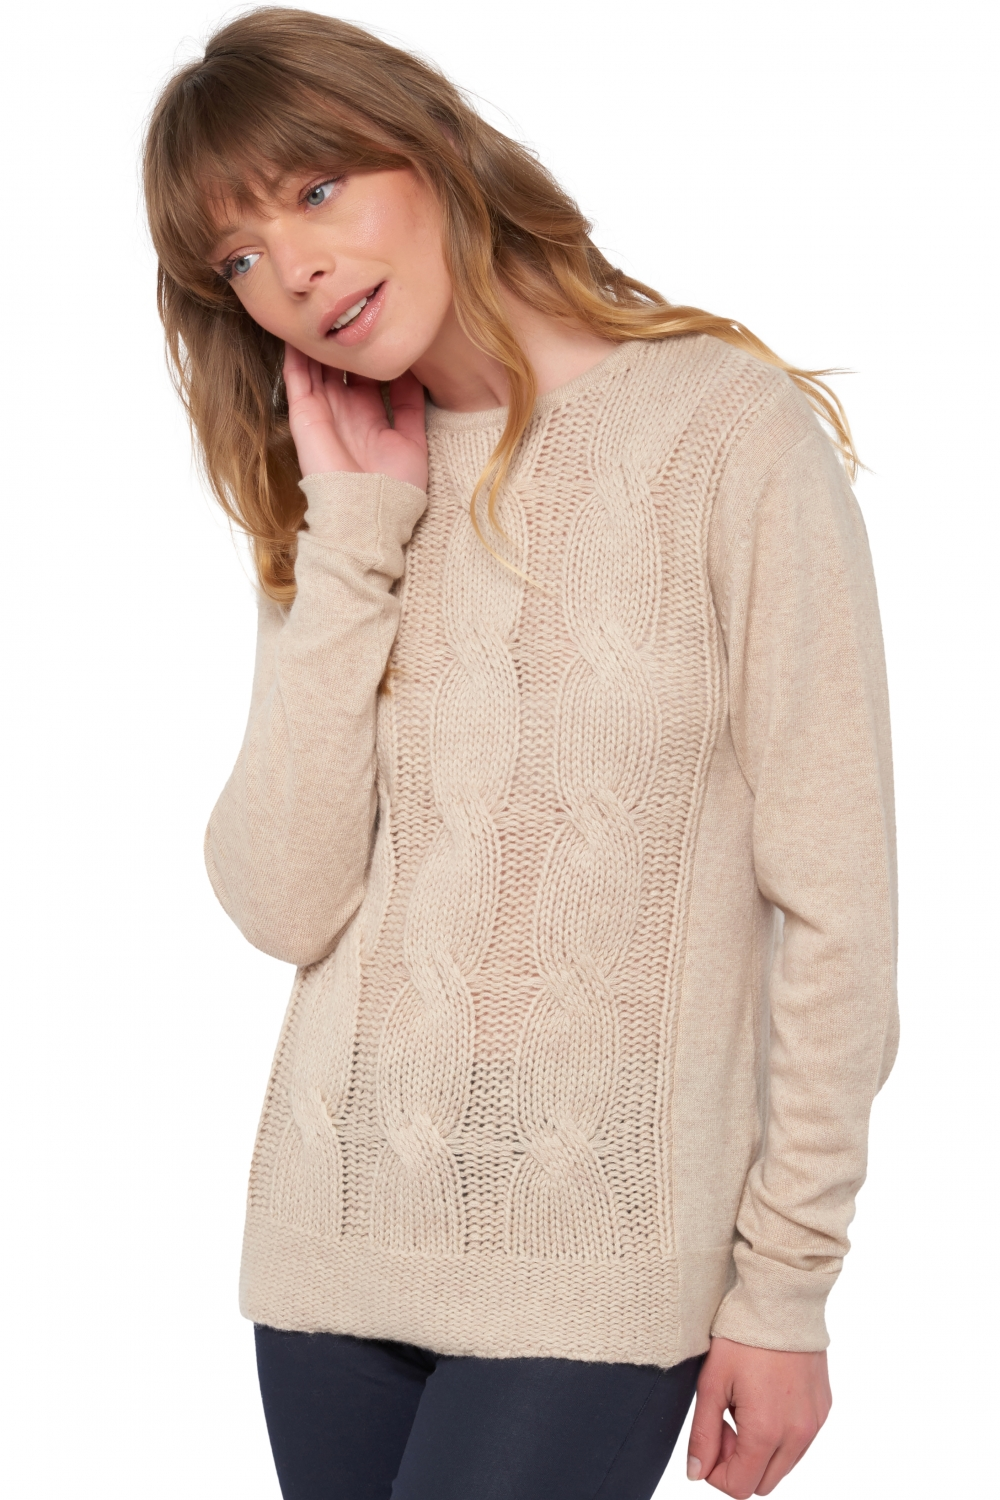 Cashmere ladies round necks shae vintage beige chine xl